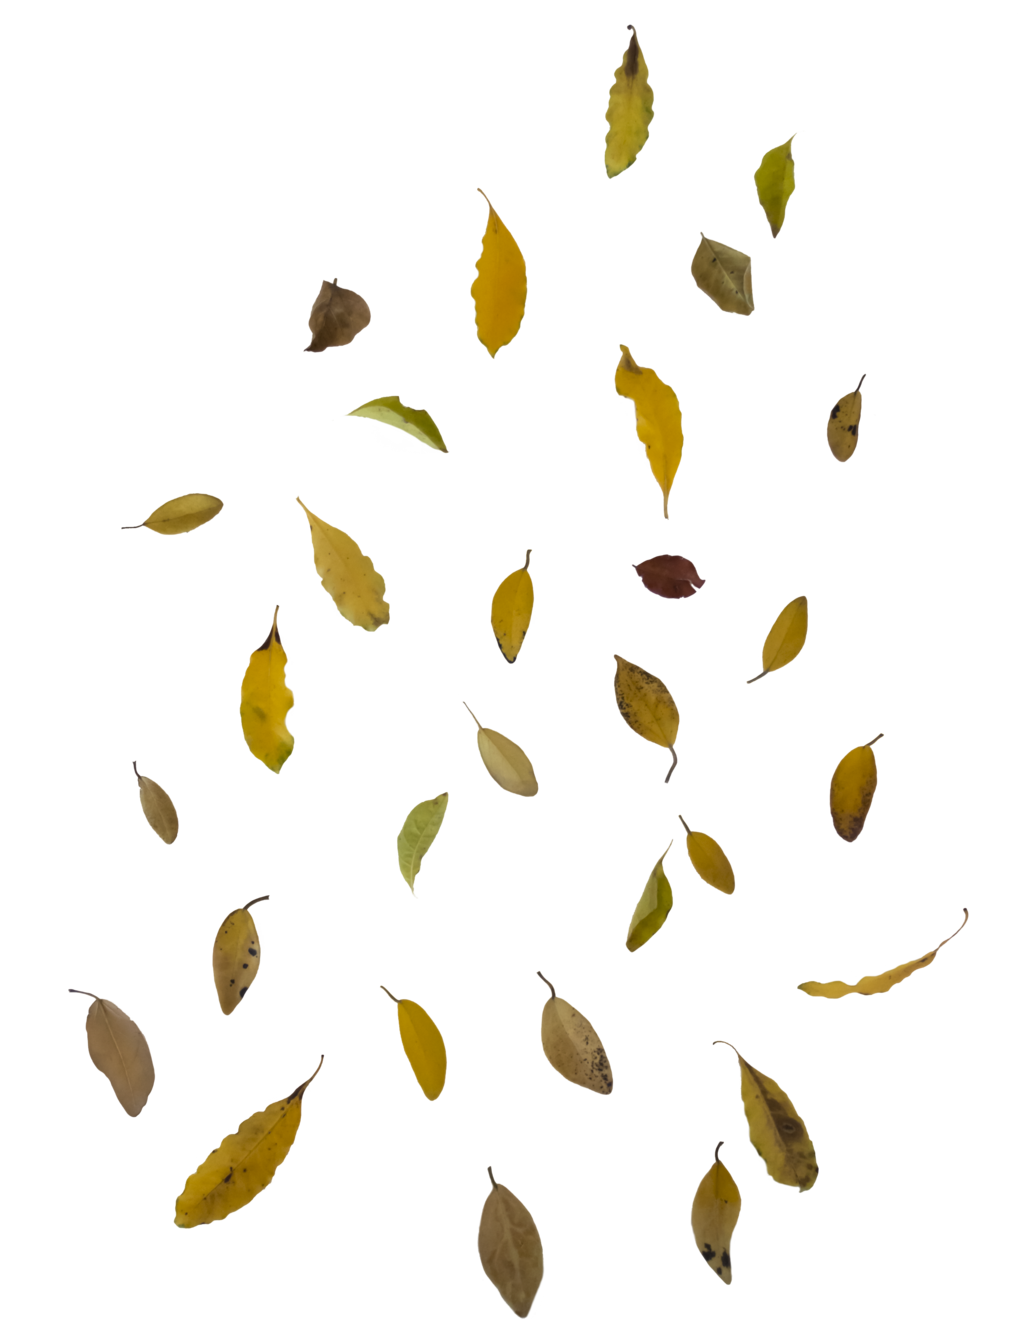 Falling leaves png. Image mart